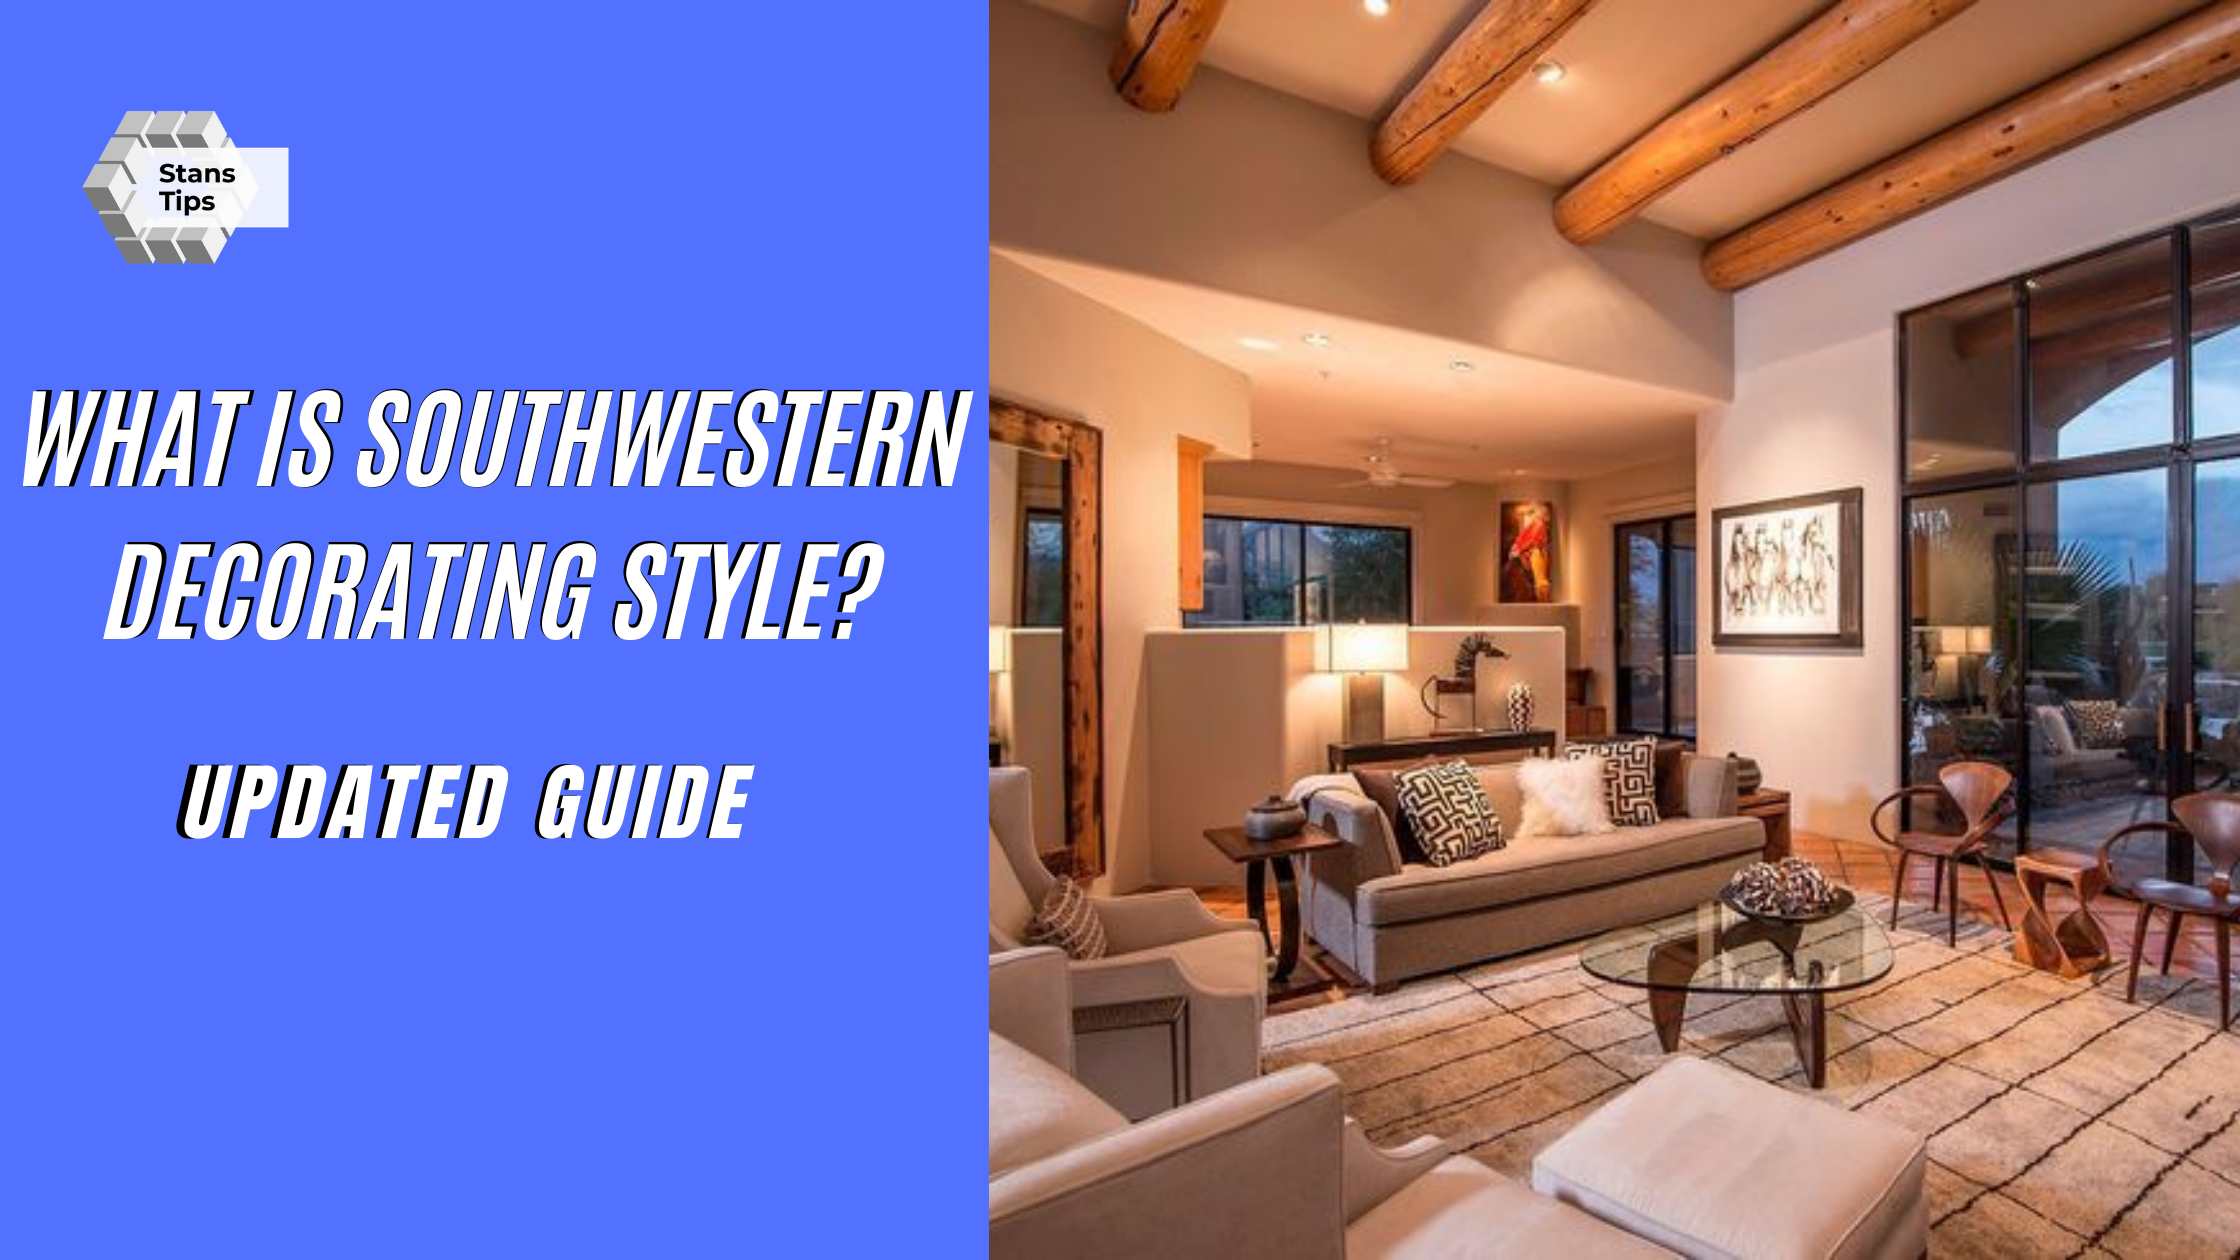 What is southwestern decorating style